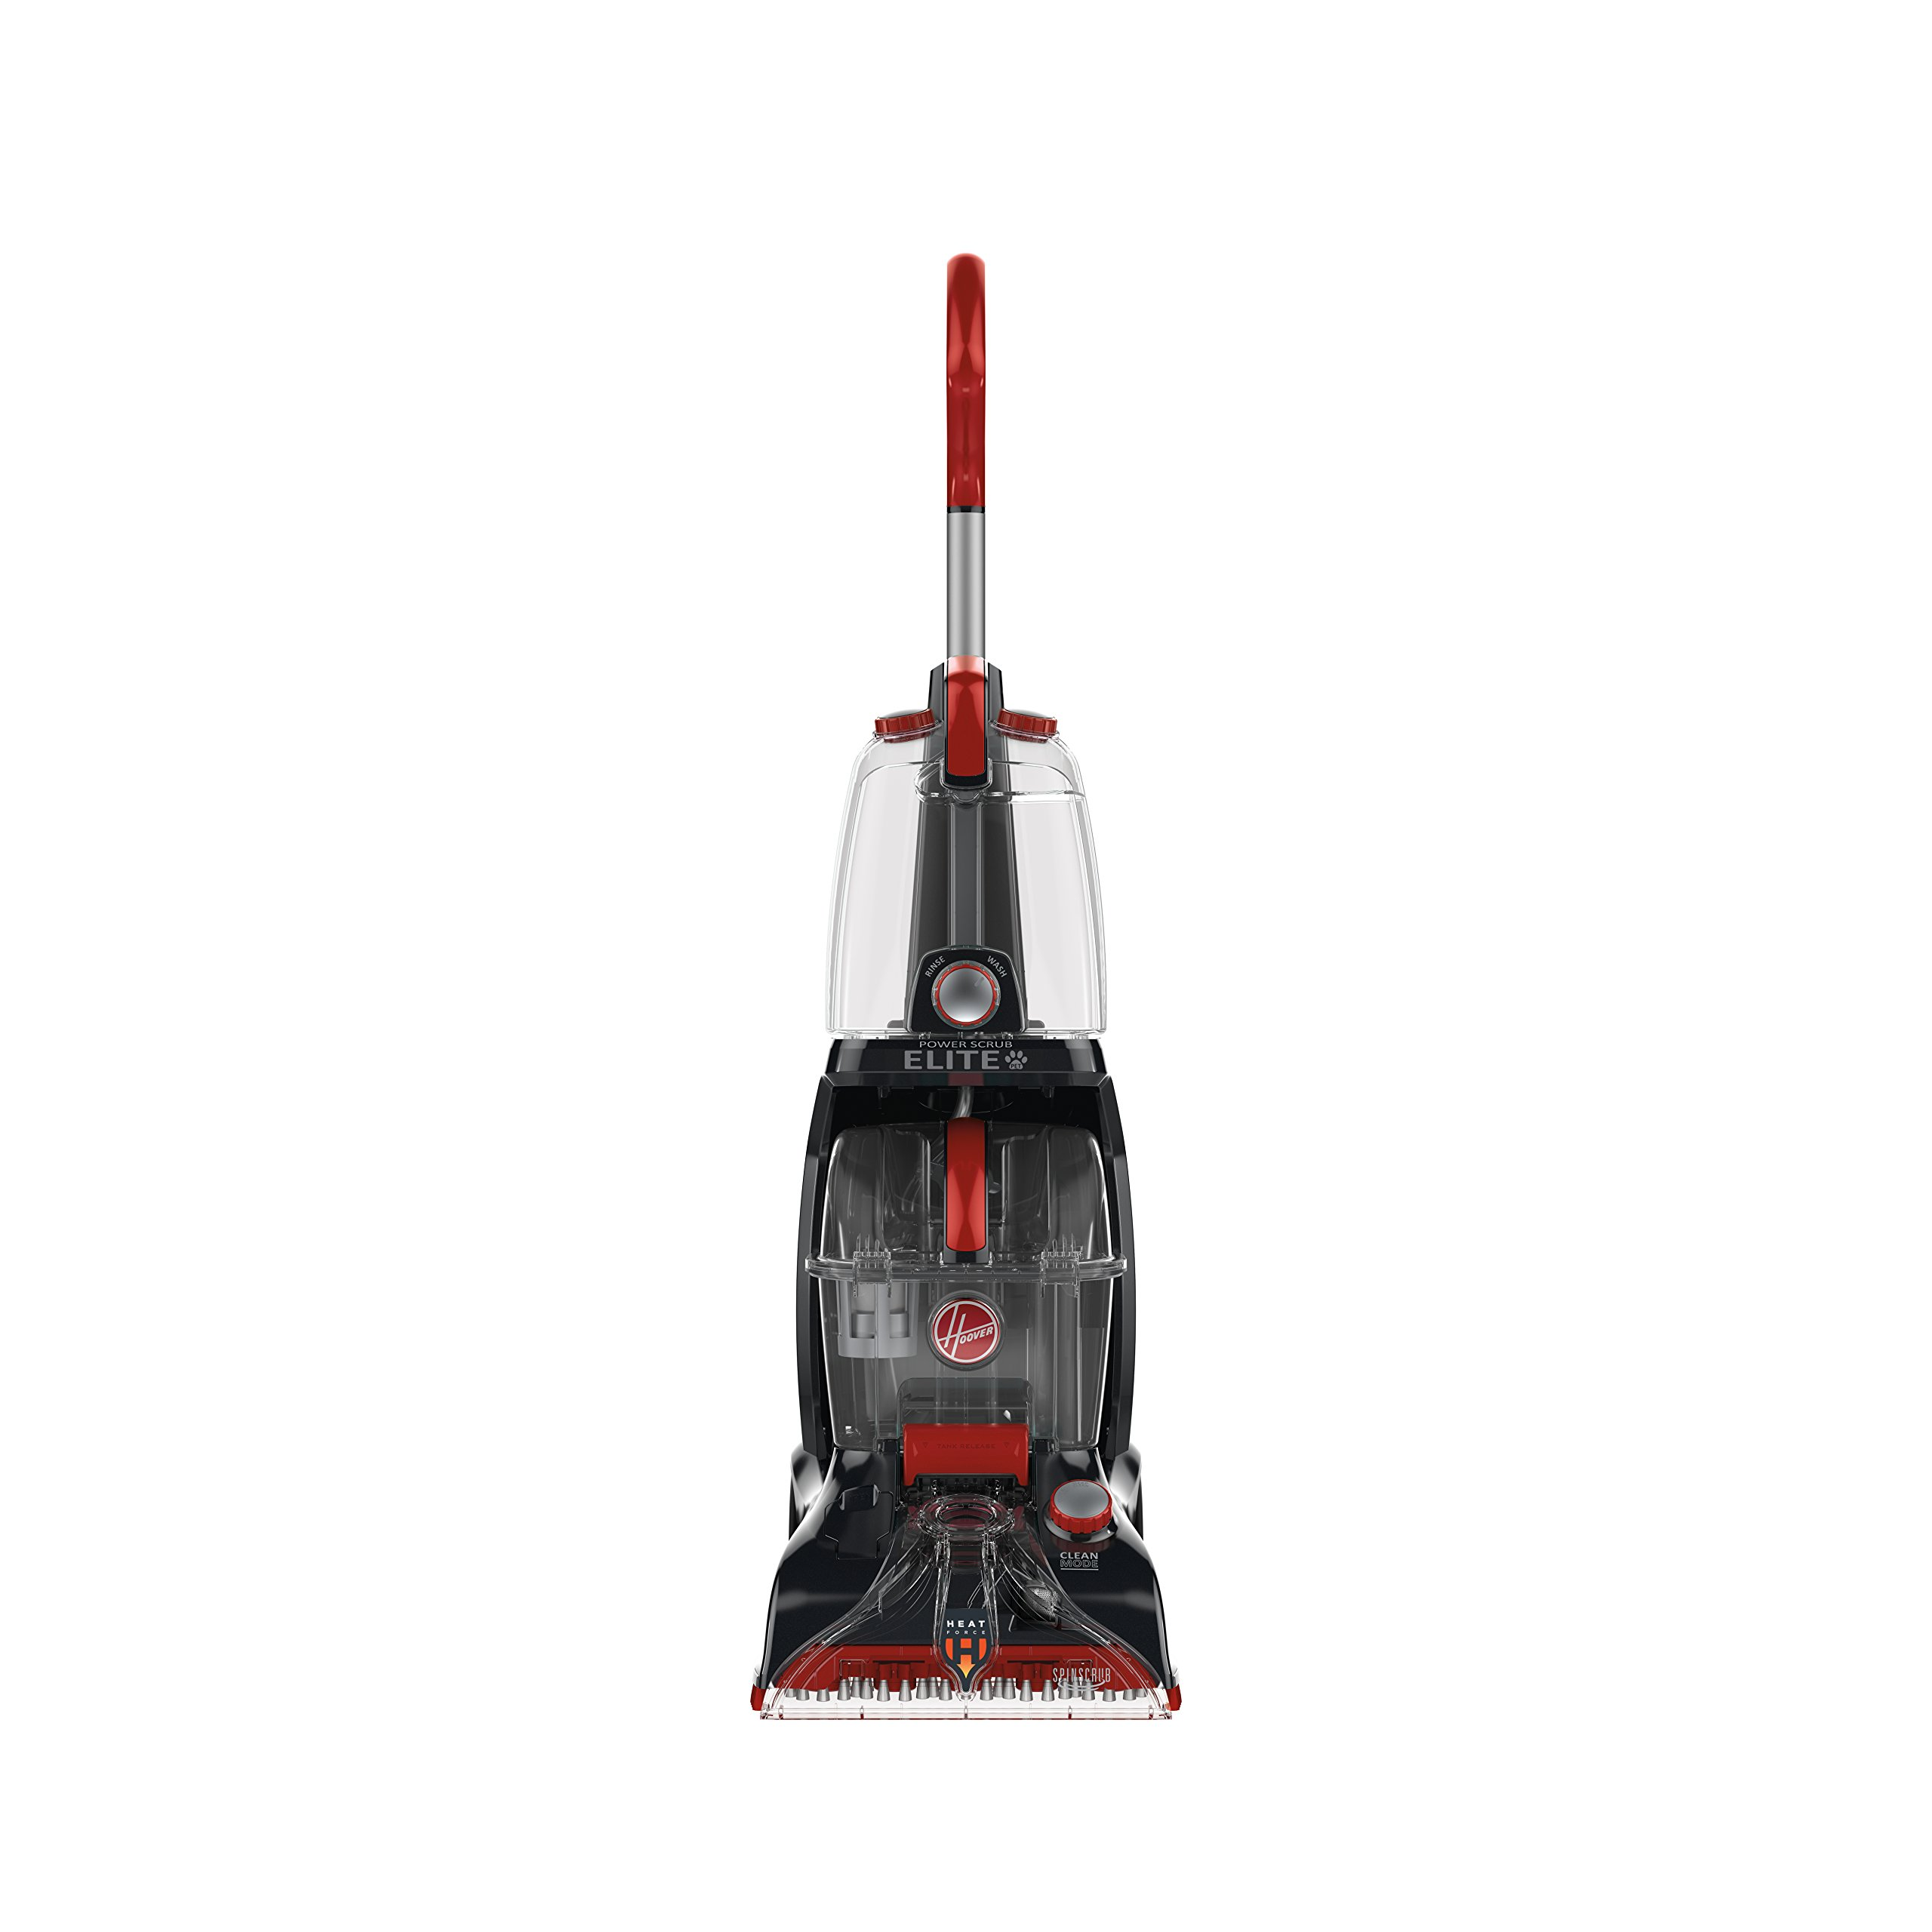 Computer vacuum cleaner: how effective and necessary it is 70